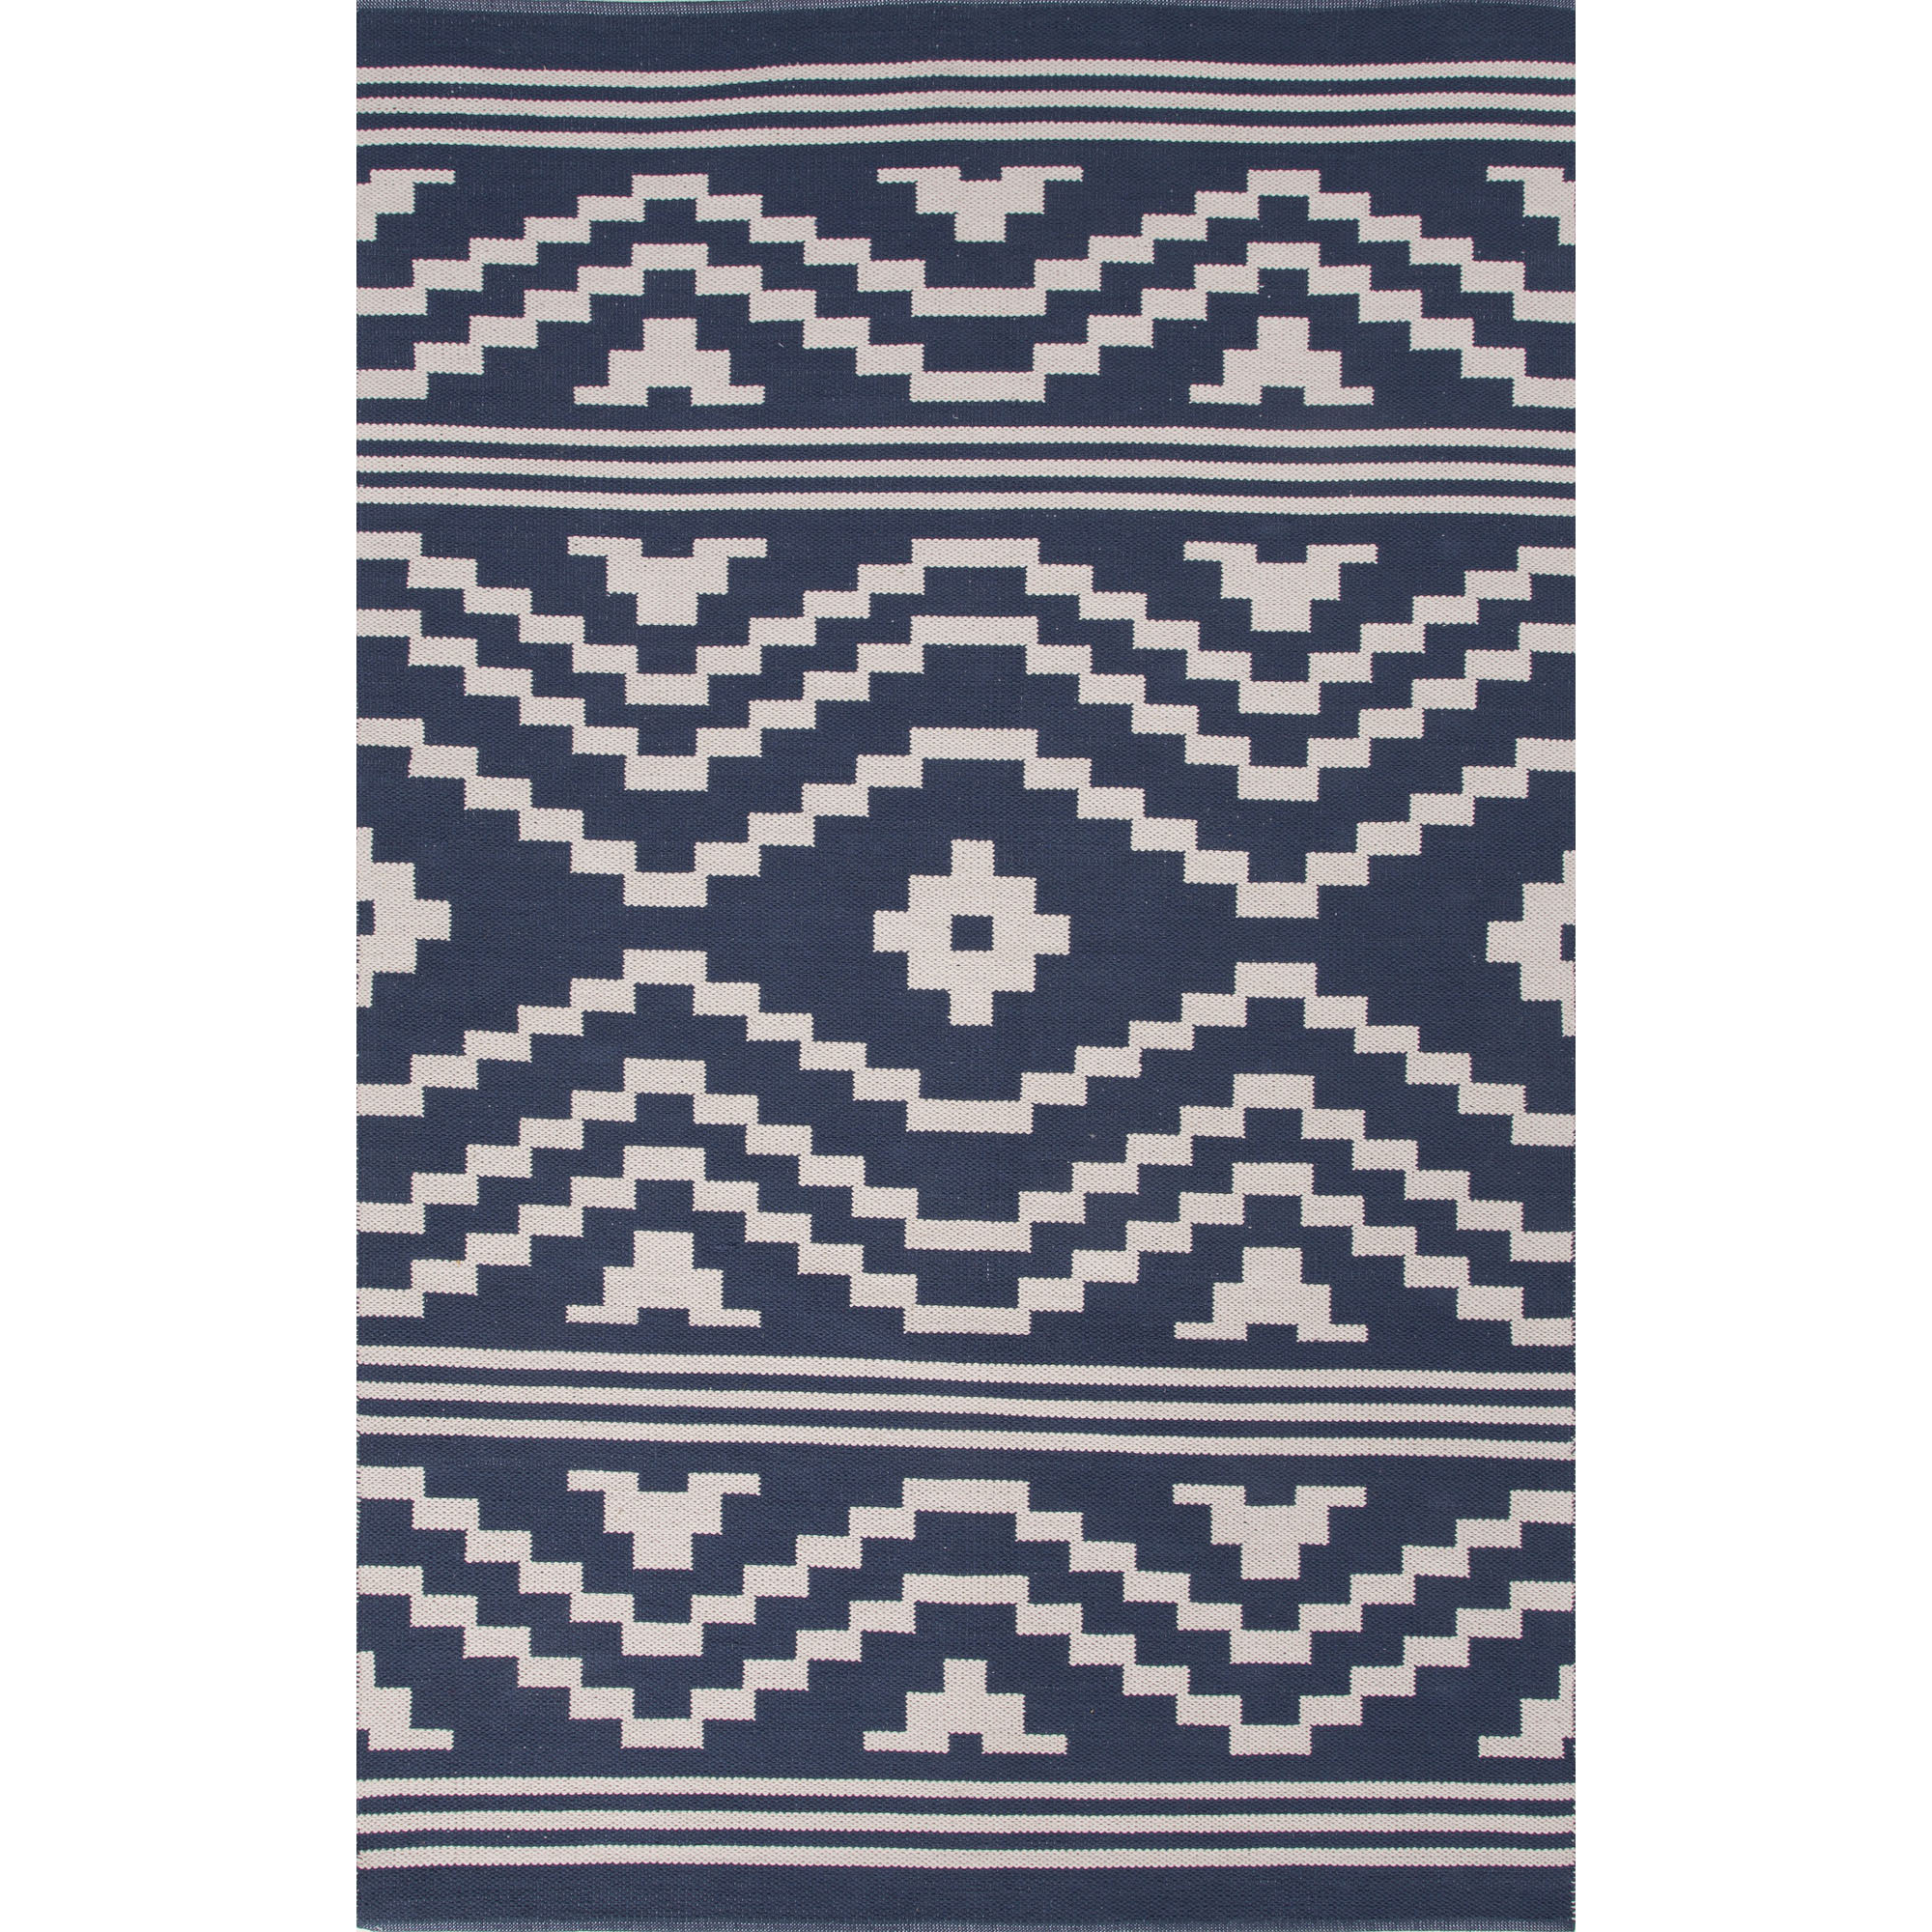 JAIPUR Rugs Traditions Modern Cotton Flat Weave 5 x 8 Rug - Item Number: RUG120661